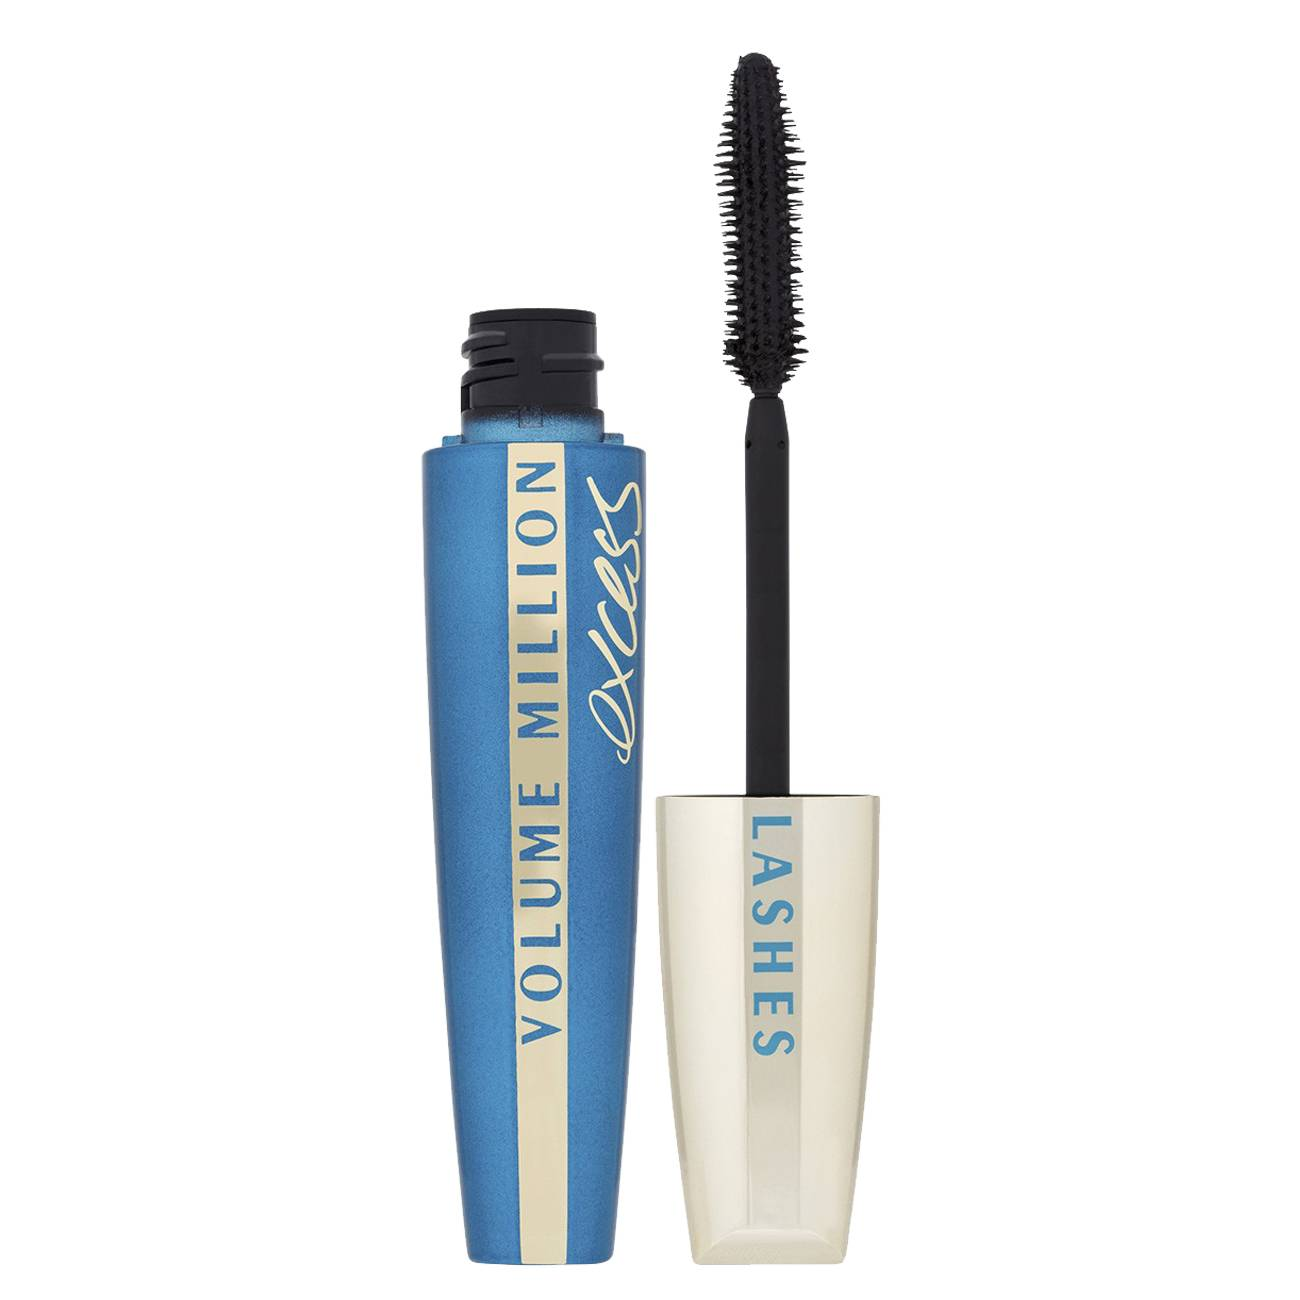 VOLUME MILLION LASHES 10 ML imagine produs